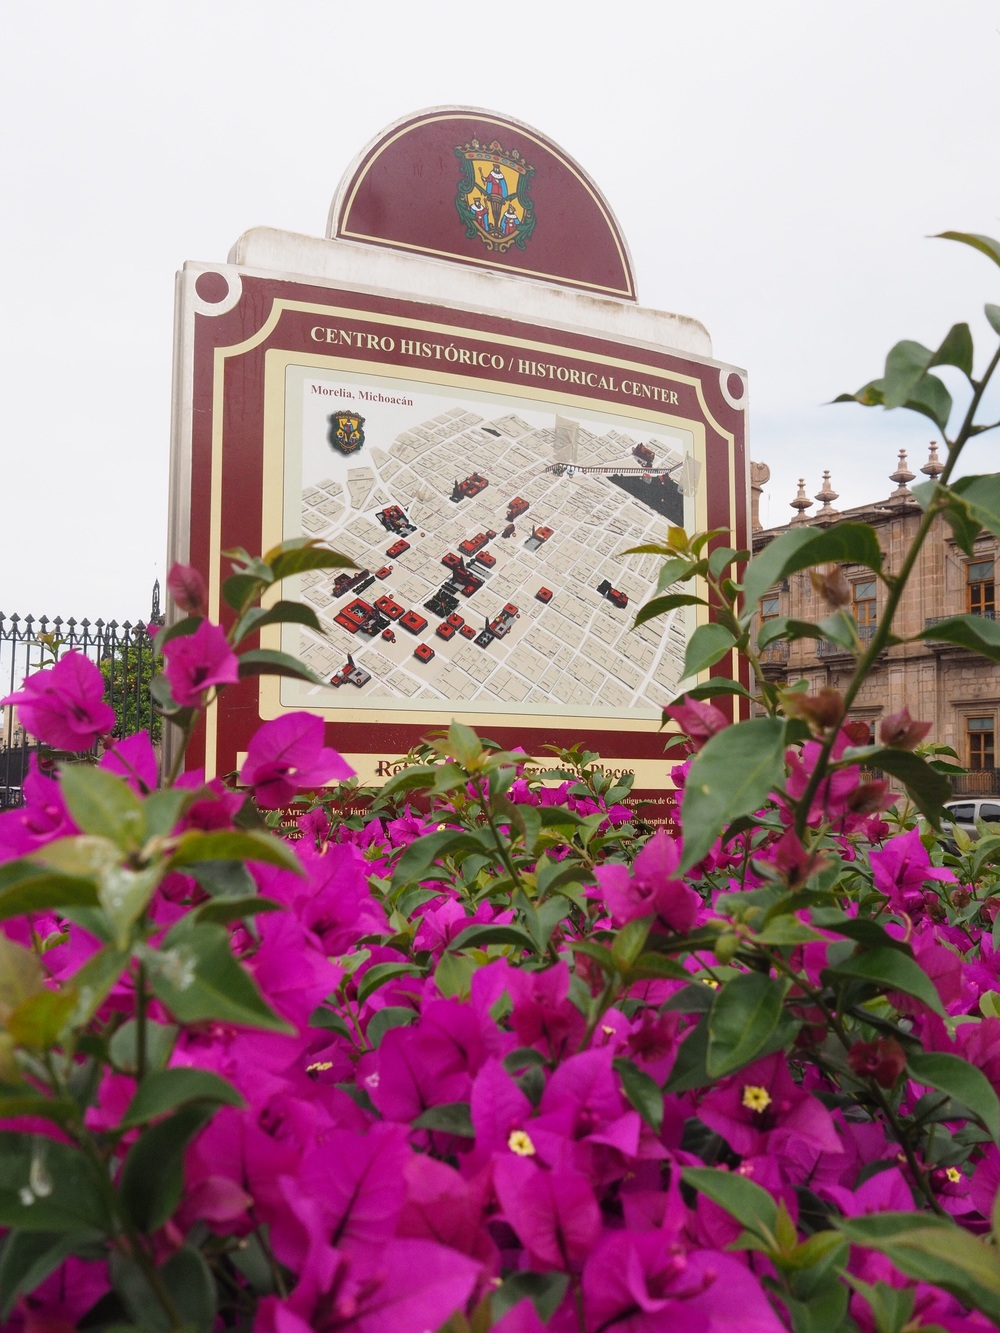 Blooming bougainvilla & a map of the Centro